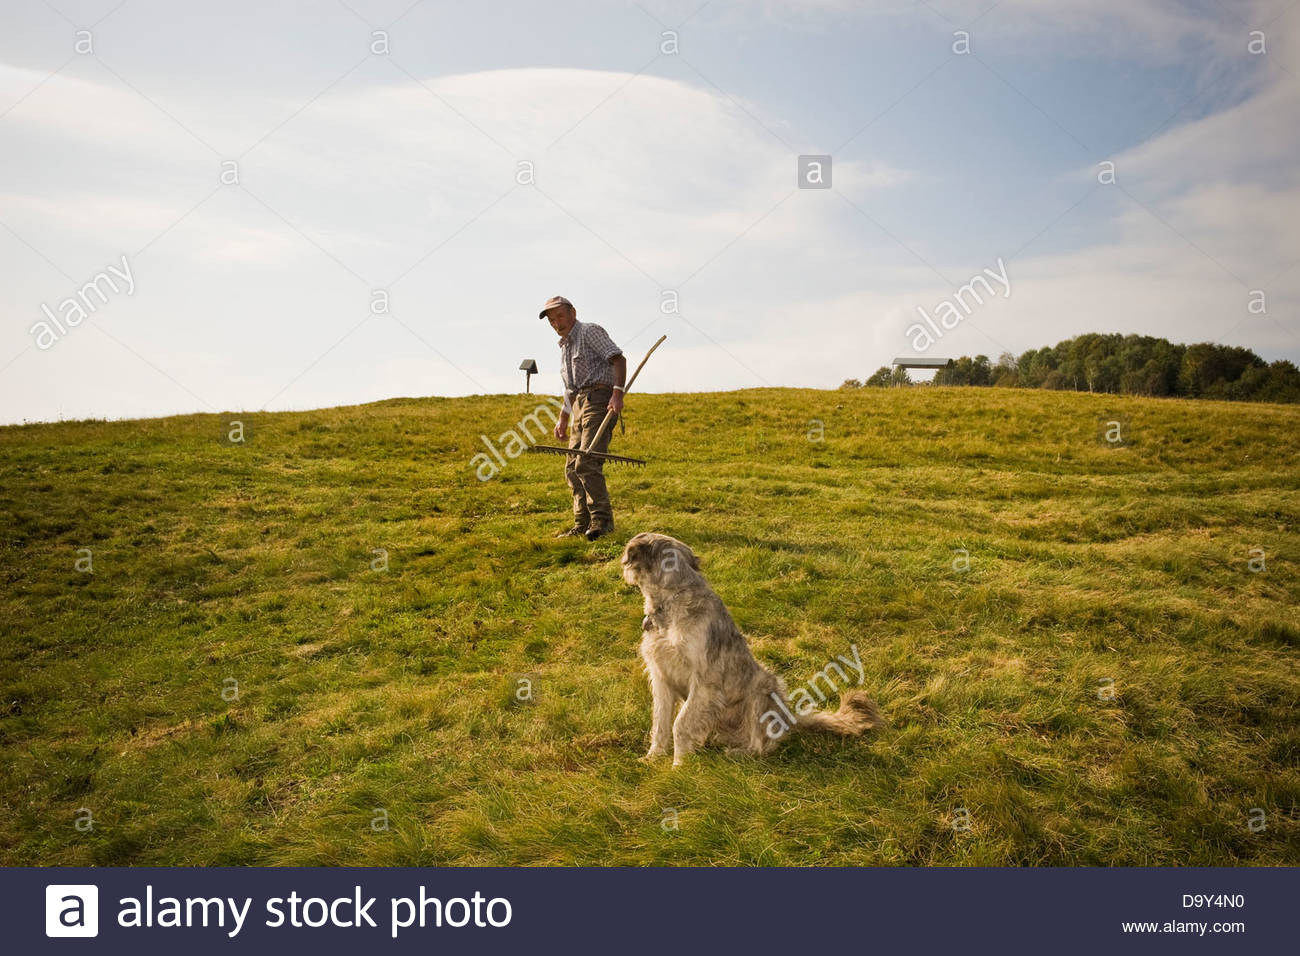 Farmer and cattle breeder,Taleggio valley,Lombardy,Italy - Stock Image